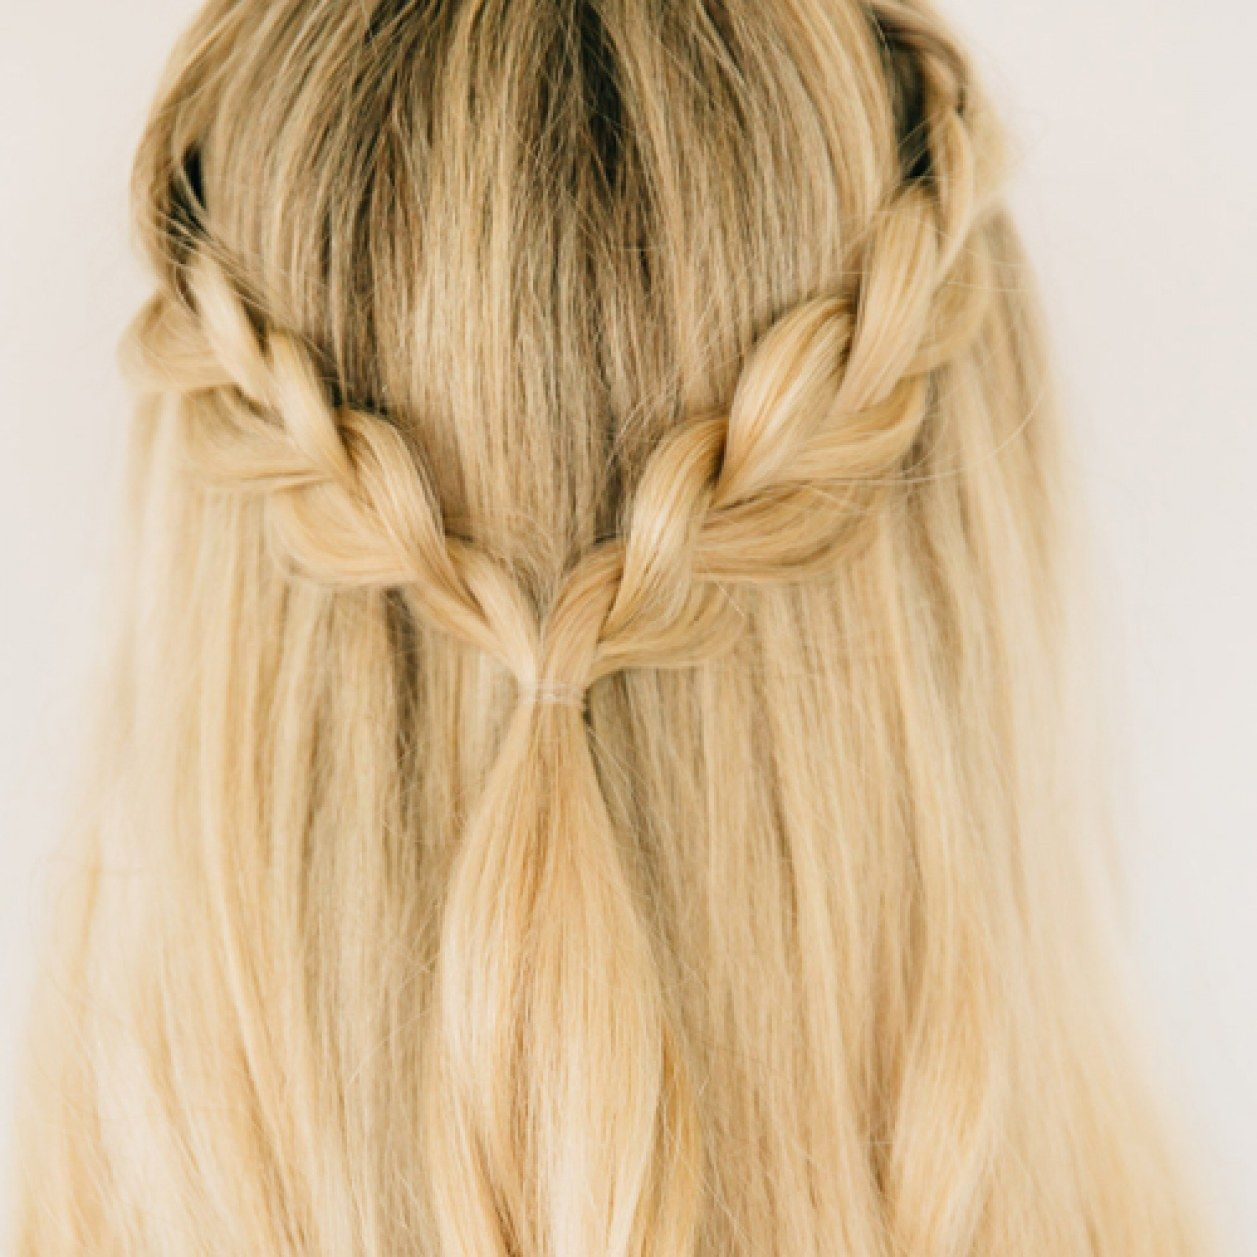 3 simple braided hairstyles that go fast and look great # simple hairstyles … - therezepte sites